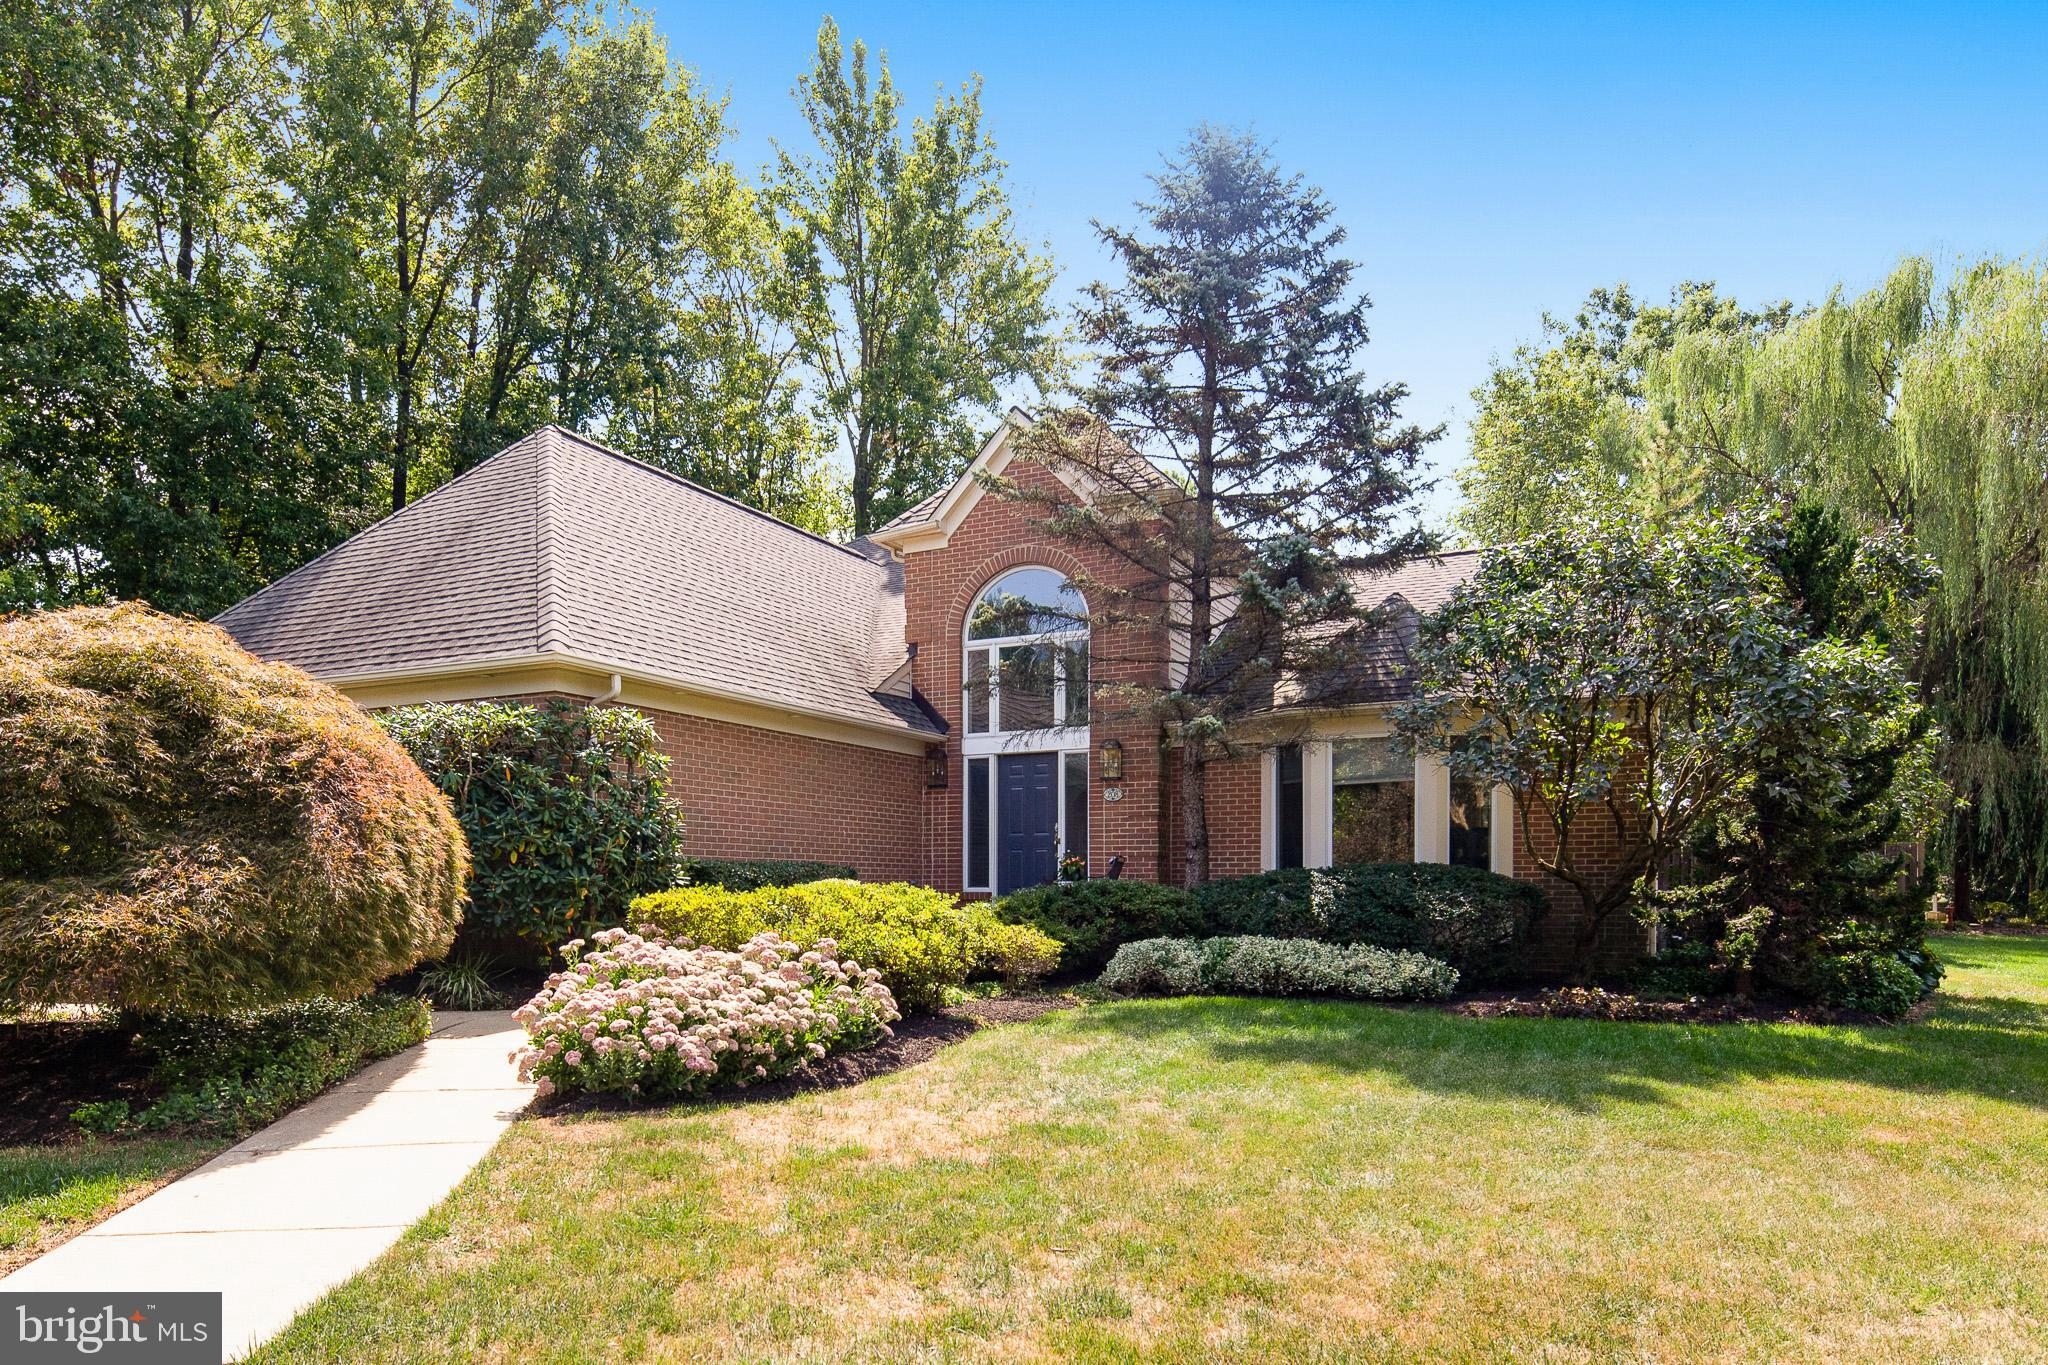 This 4 bedroom 3.5 bathroom brick first floor master has everything in a neighborhood that has had e